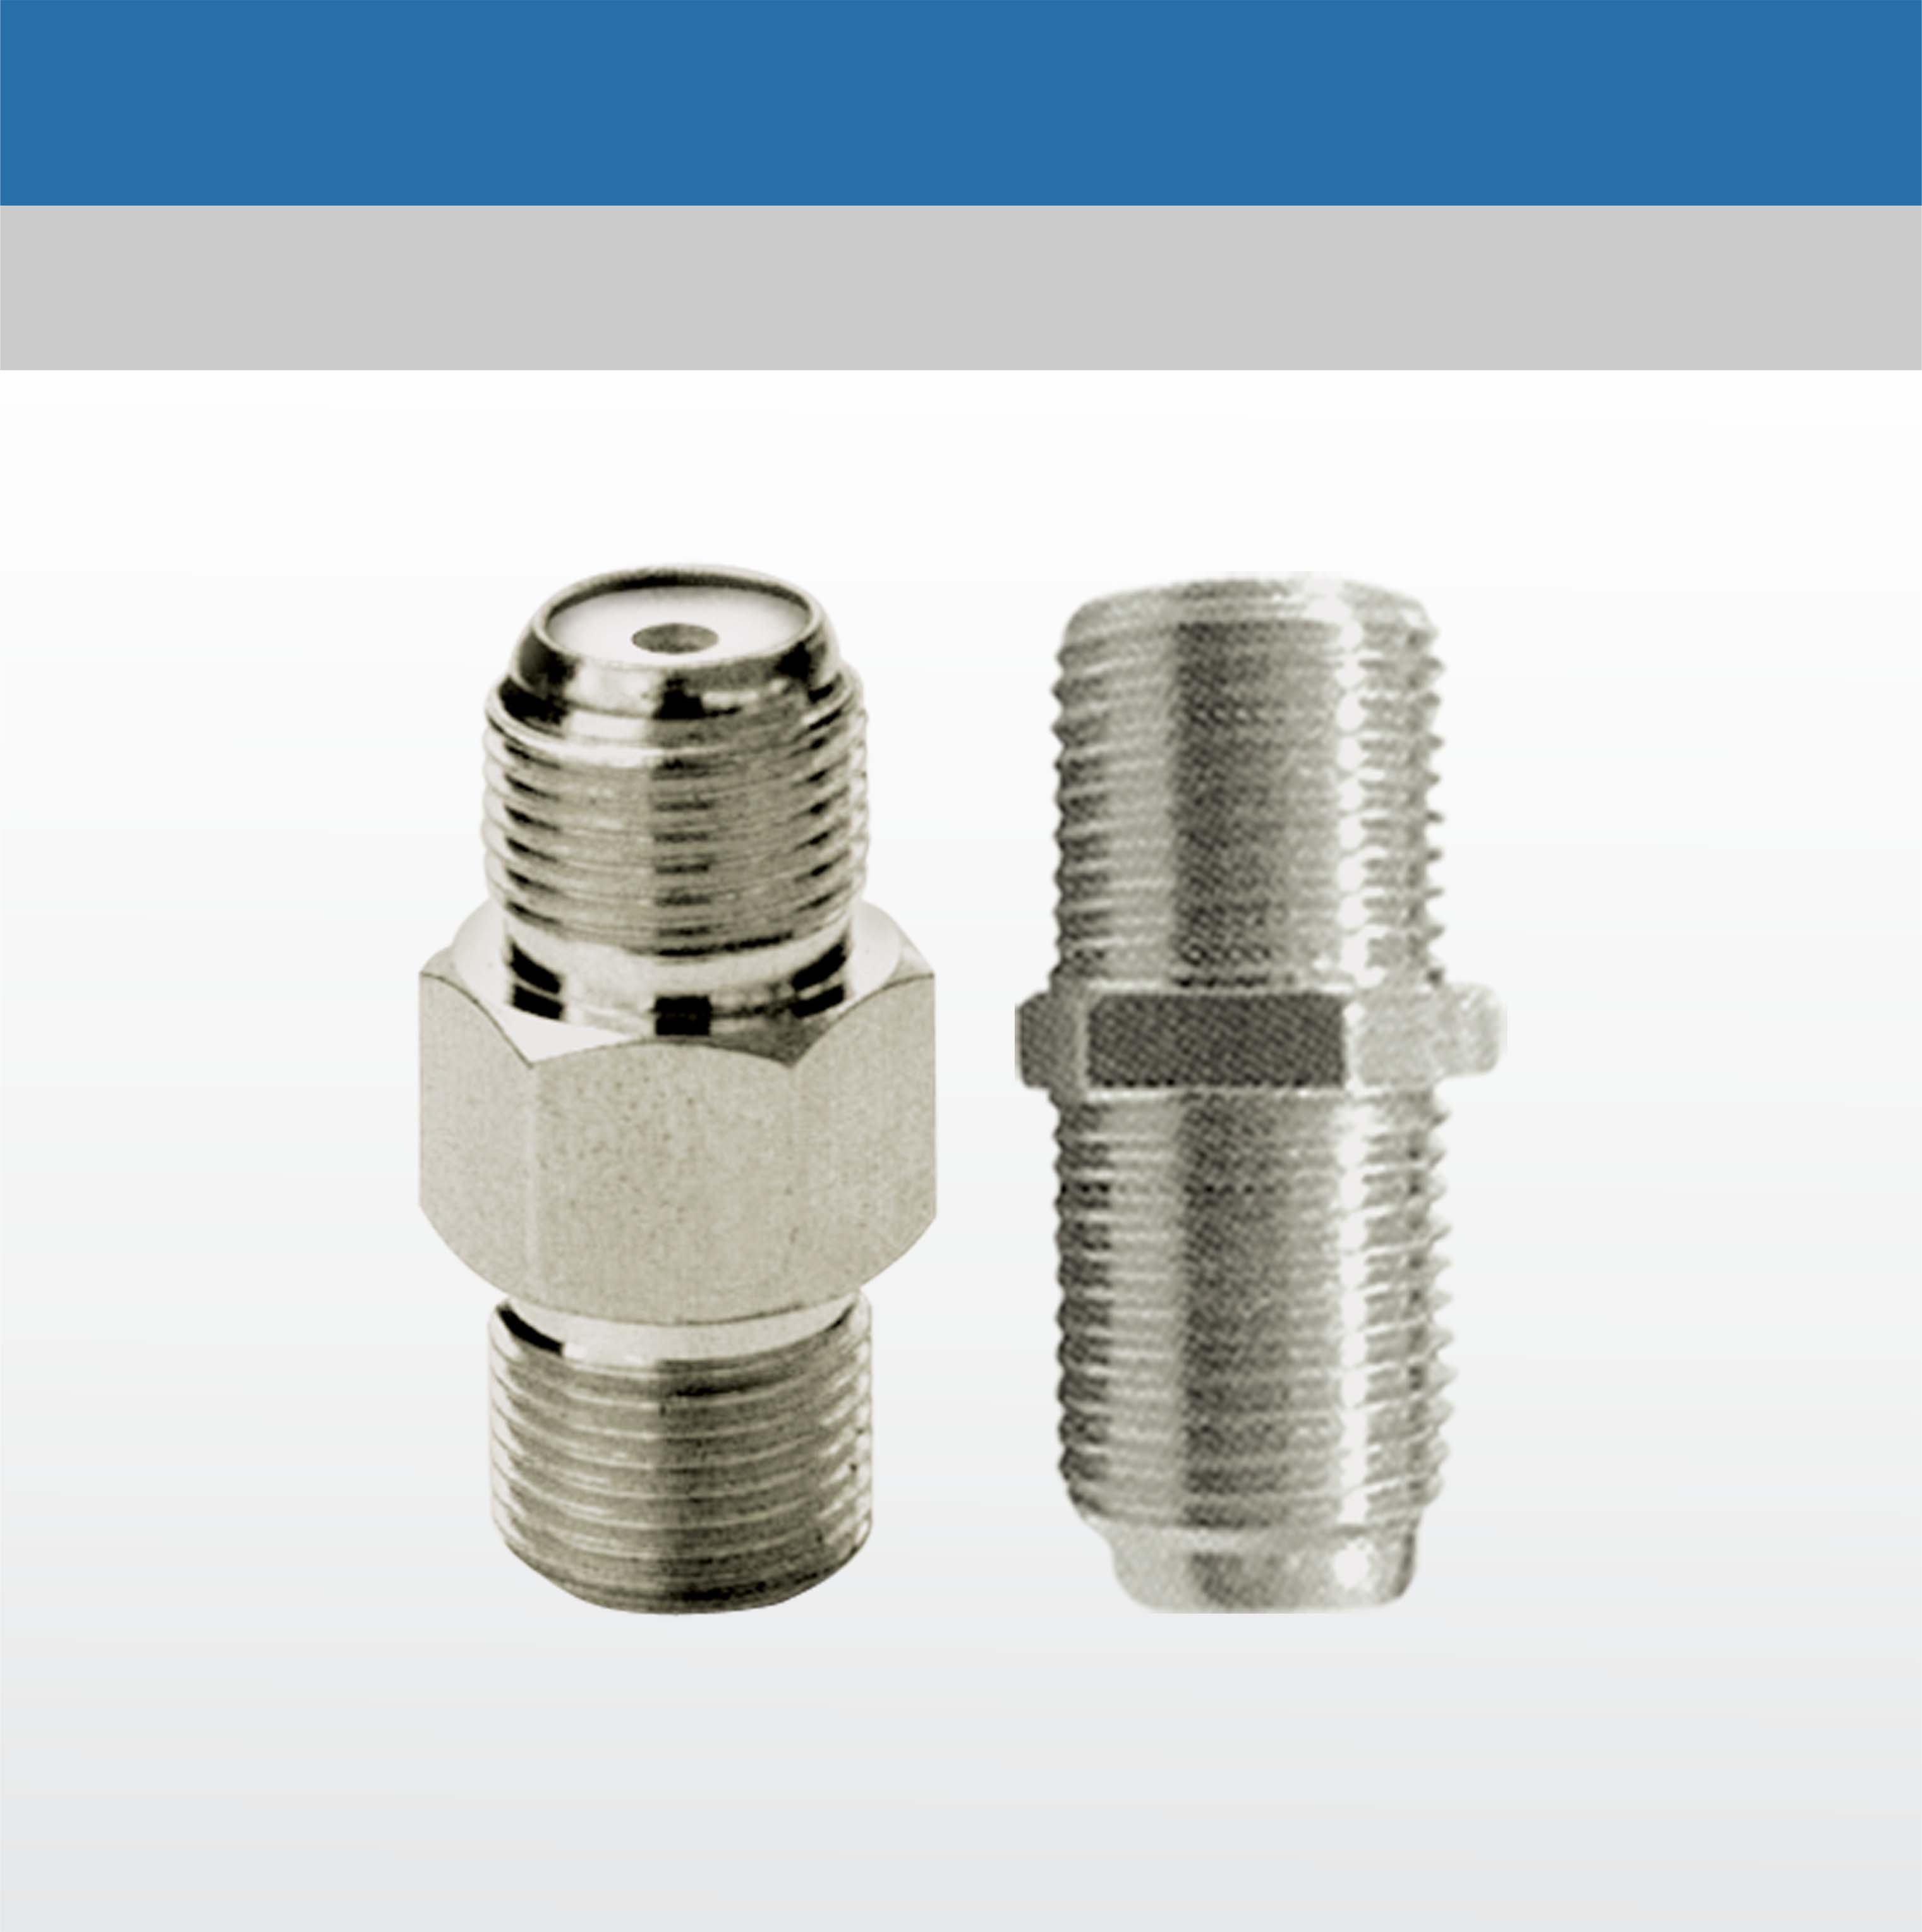 CONNECTOR FIMALE TO FIMALE